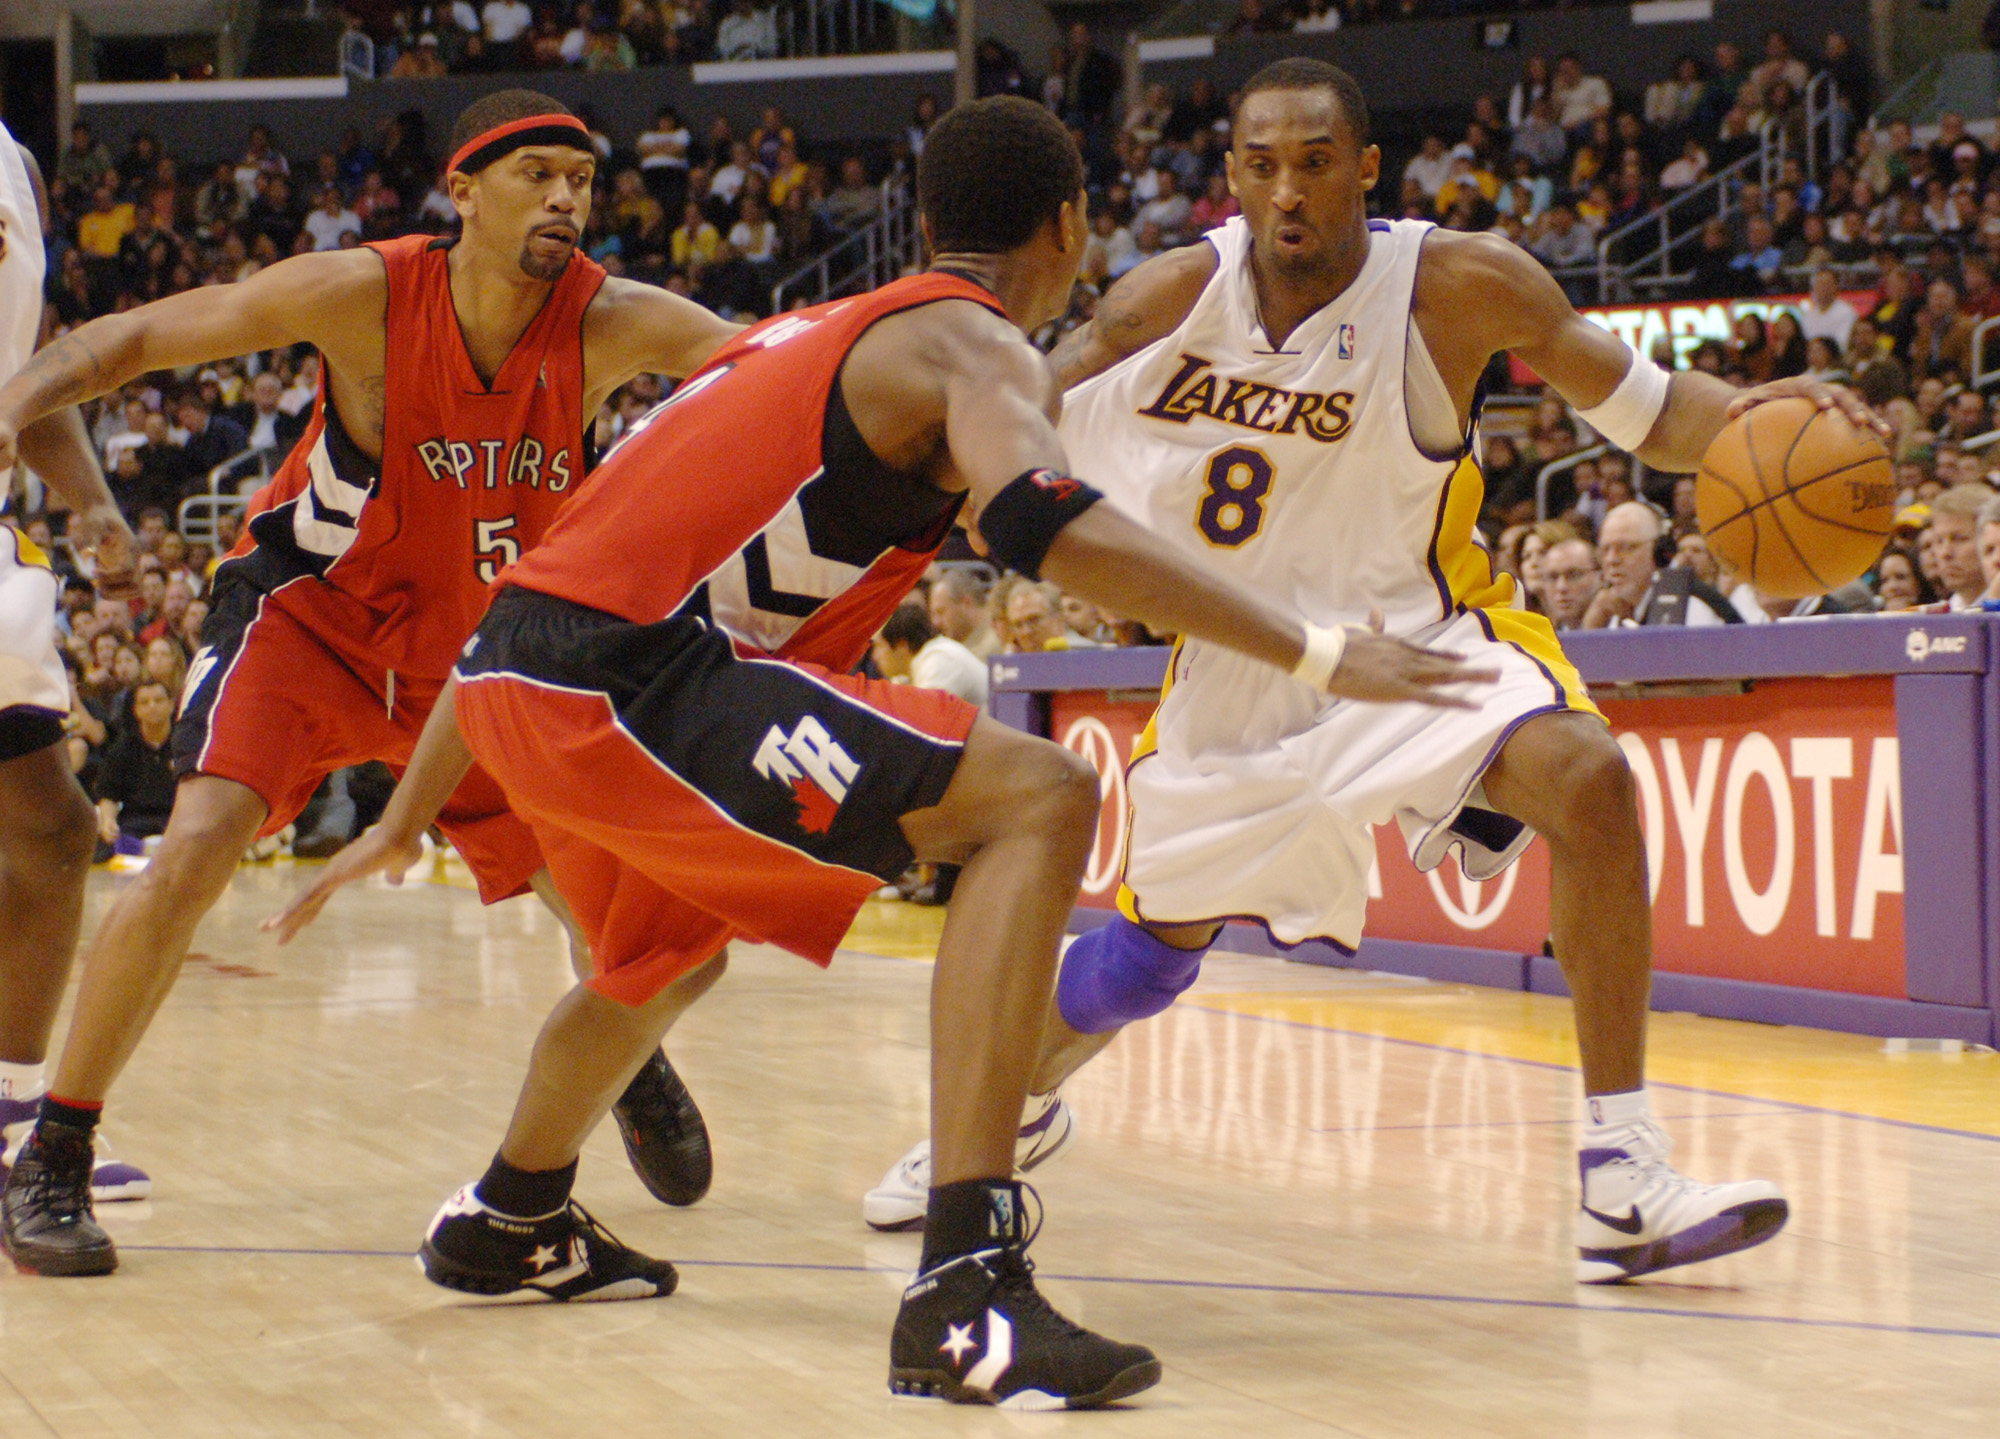 Bryant drives past Toronto Raptors' Jalen Rose and Chris Bosh in the fourth quarter of an NBA basketball game in Los Angeles on Jan. 22, 2006, en route to scoring a career-high 81 points. The performance was not only the best-ever by a Laker, but also the second-highest score in a single game in the NBA.